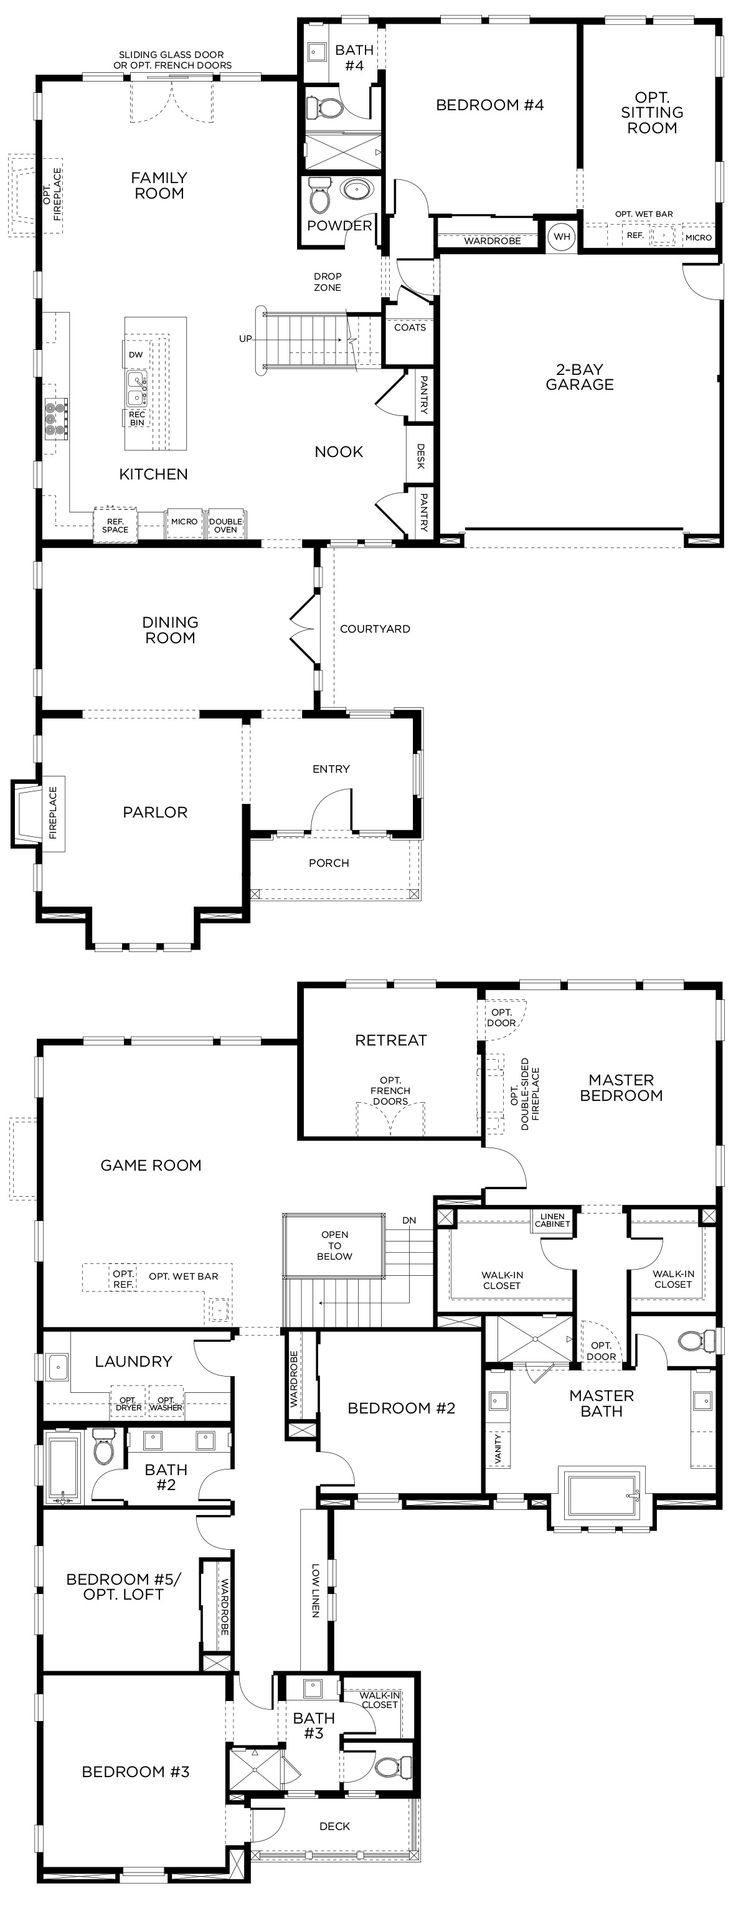 Best Images About Luxurious Floor Plans On Pinterest - Floor plans for 5 bedroom homes